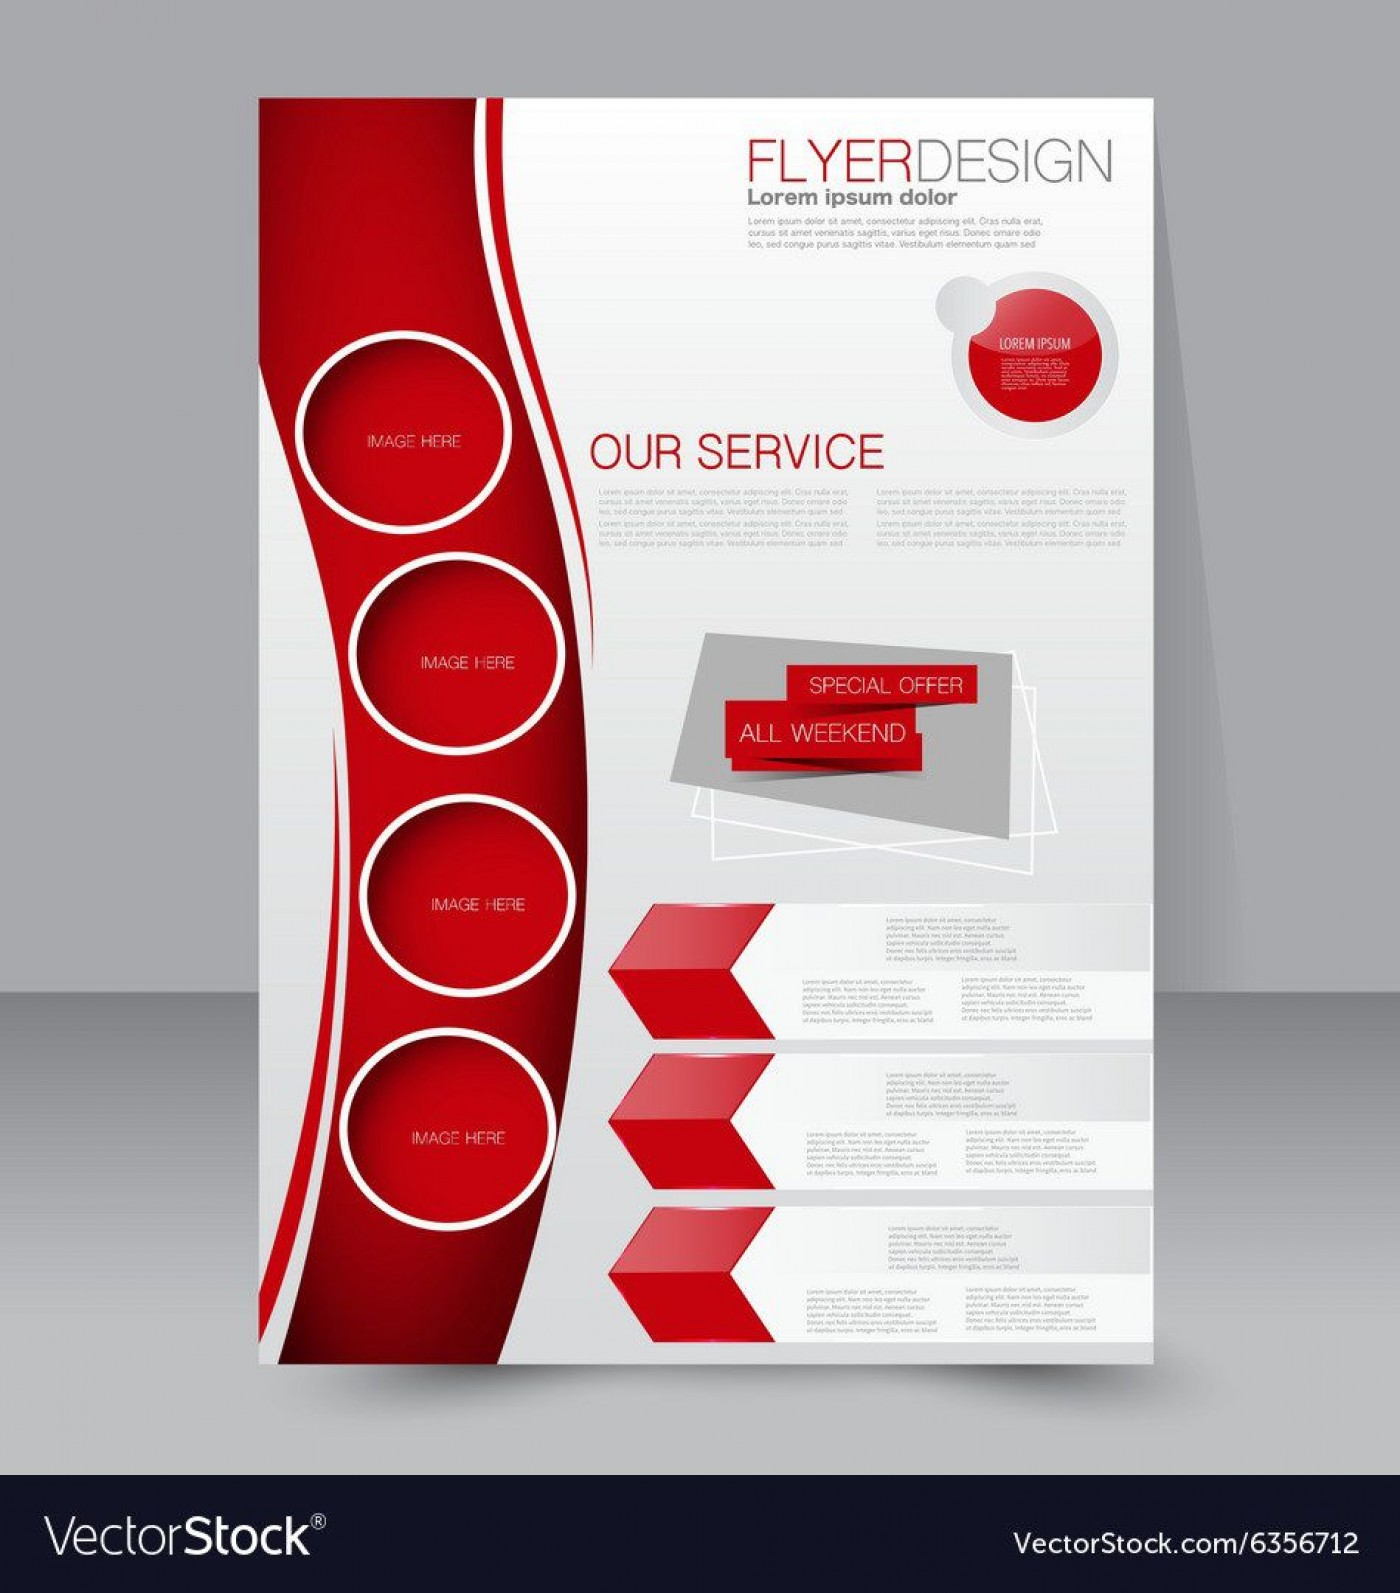 007 Beautiful Busines Flyer Template Free Download Inspiration  Photoshop Training Design1400